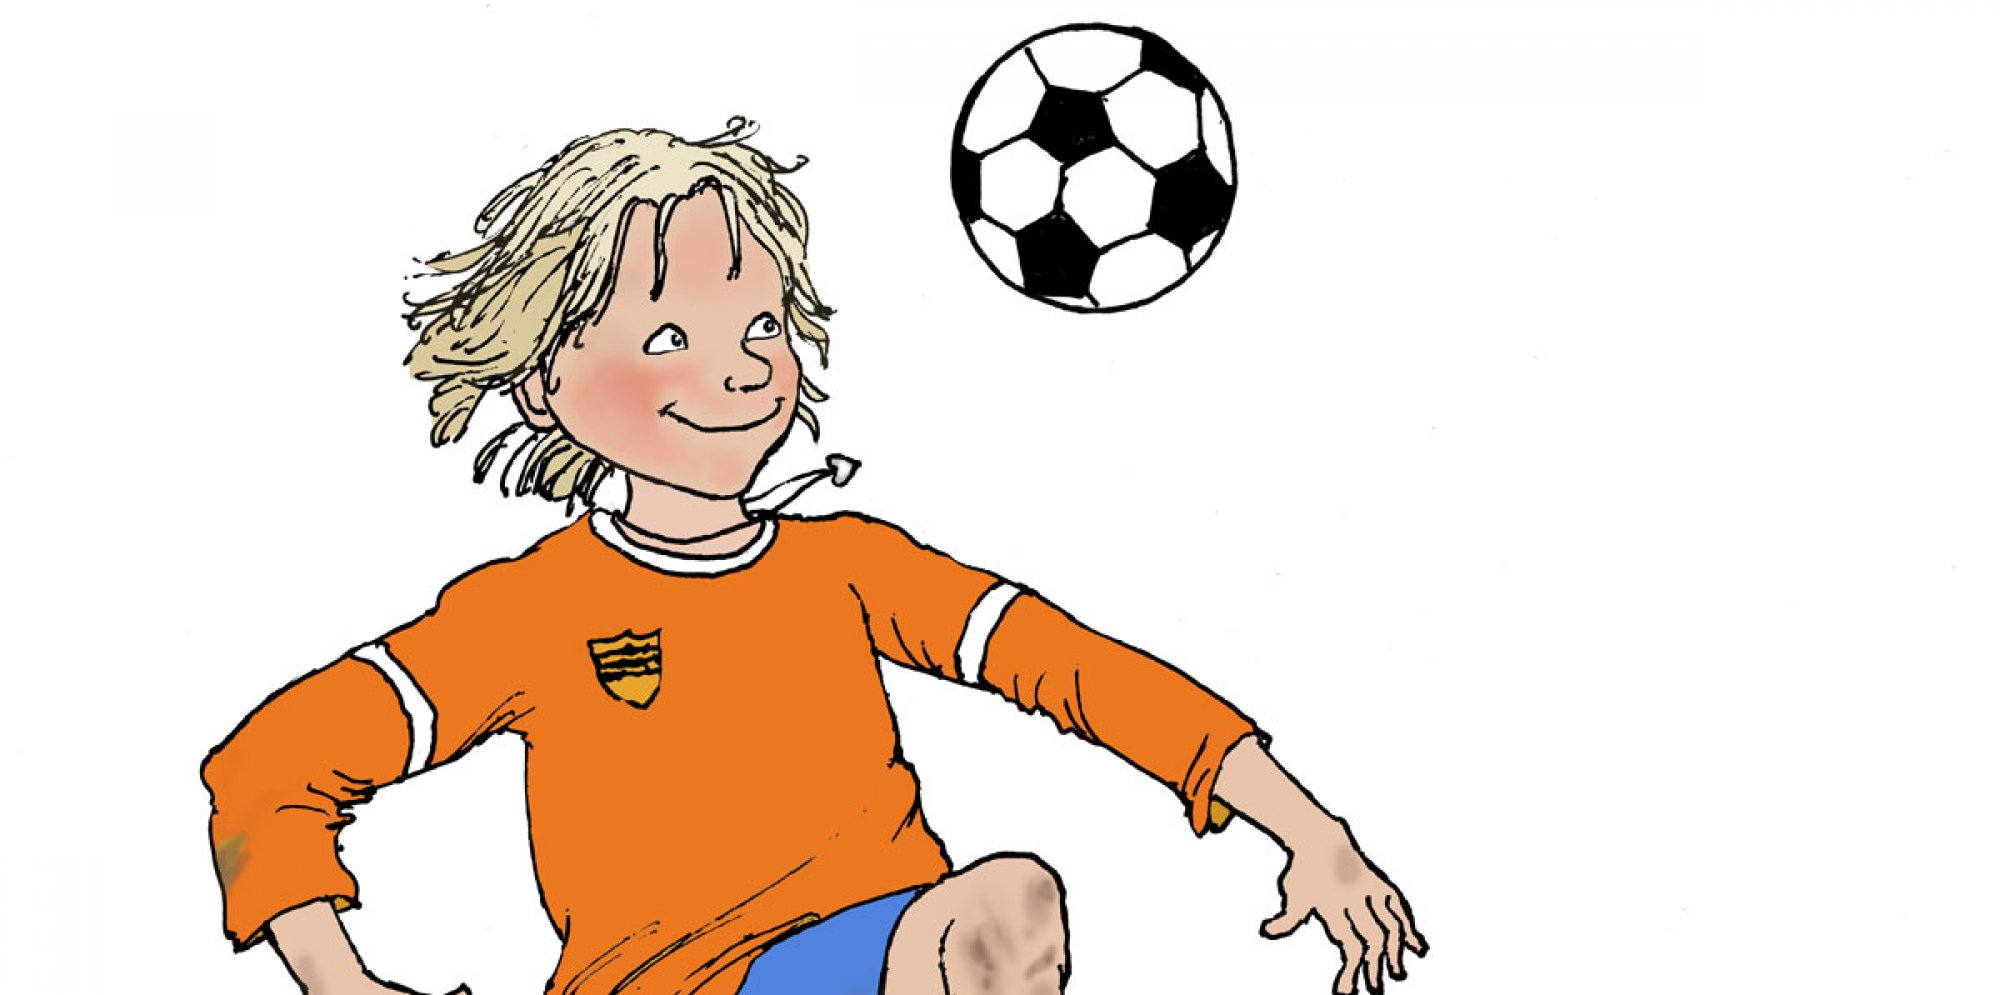 Drawing of a blond boy in an orange T-shirt looking at a hovering football